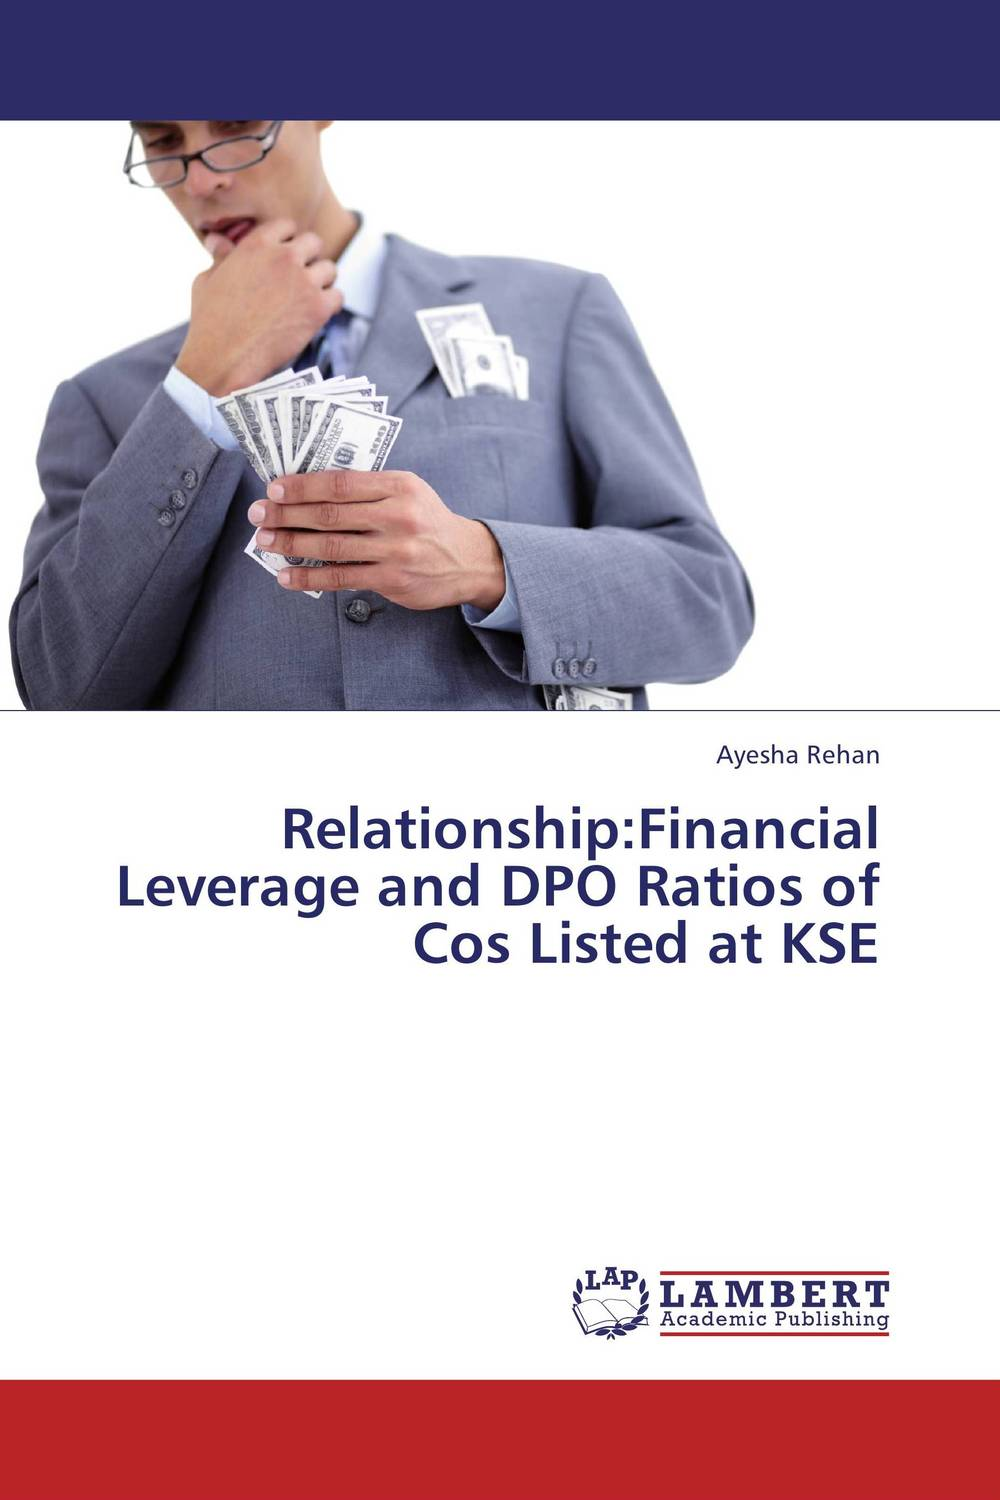 Relationship:Financial Leverage and DPO Ratios of Cos Listed at KSE sujata kapoor dividend policy and its impact on shareholders wealth